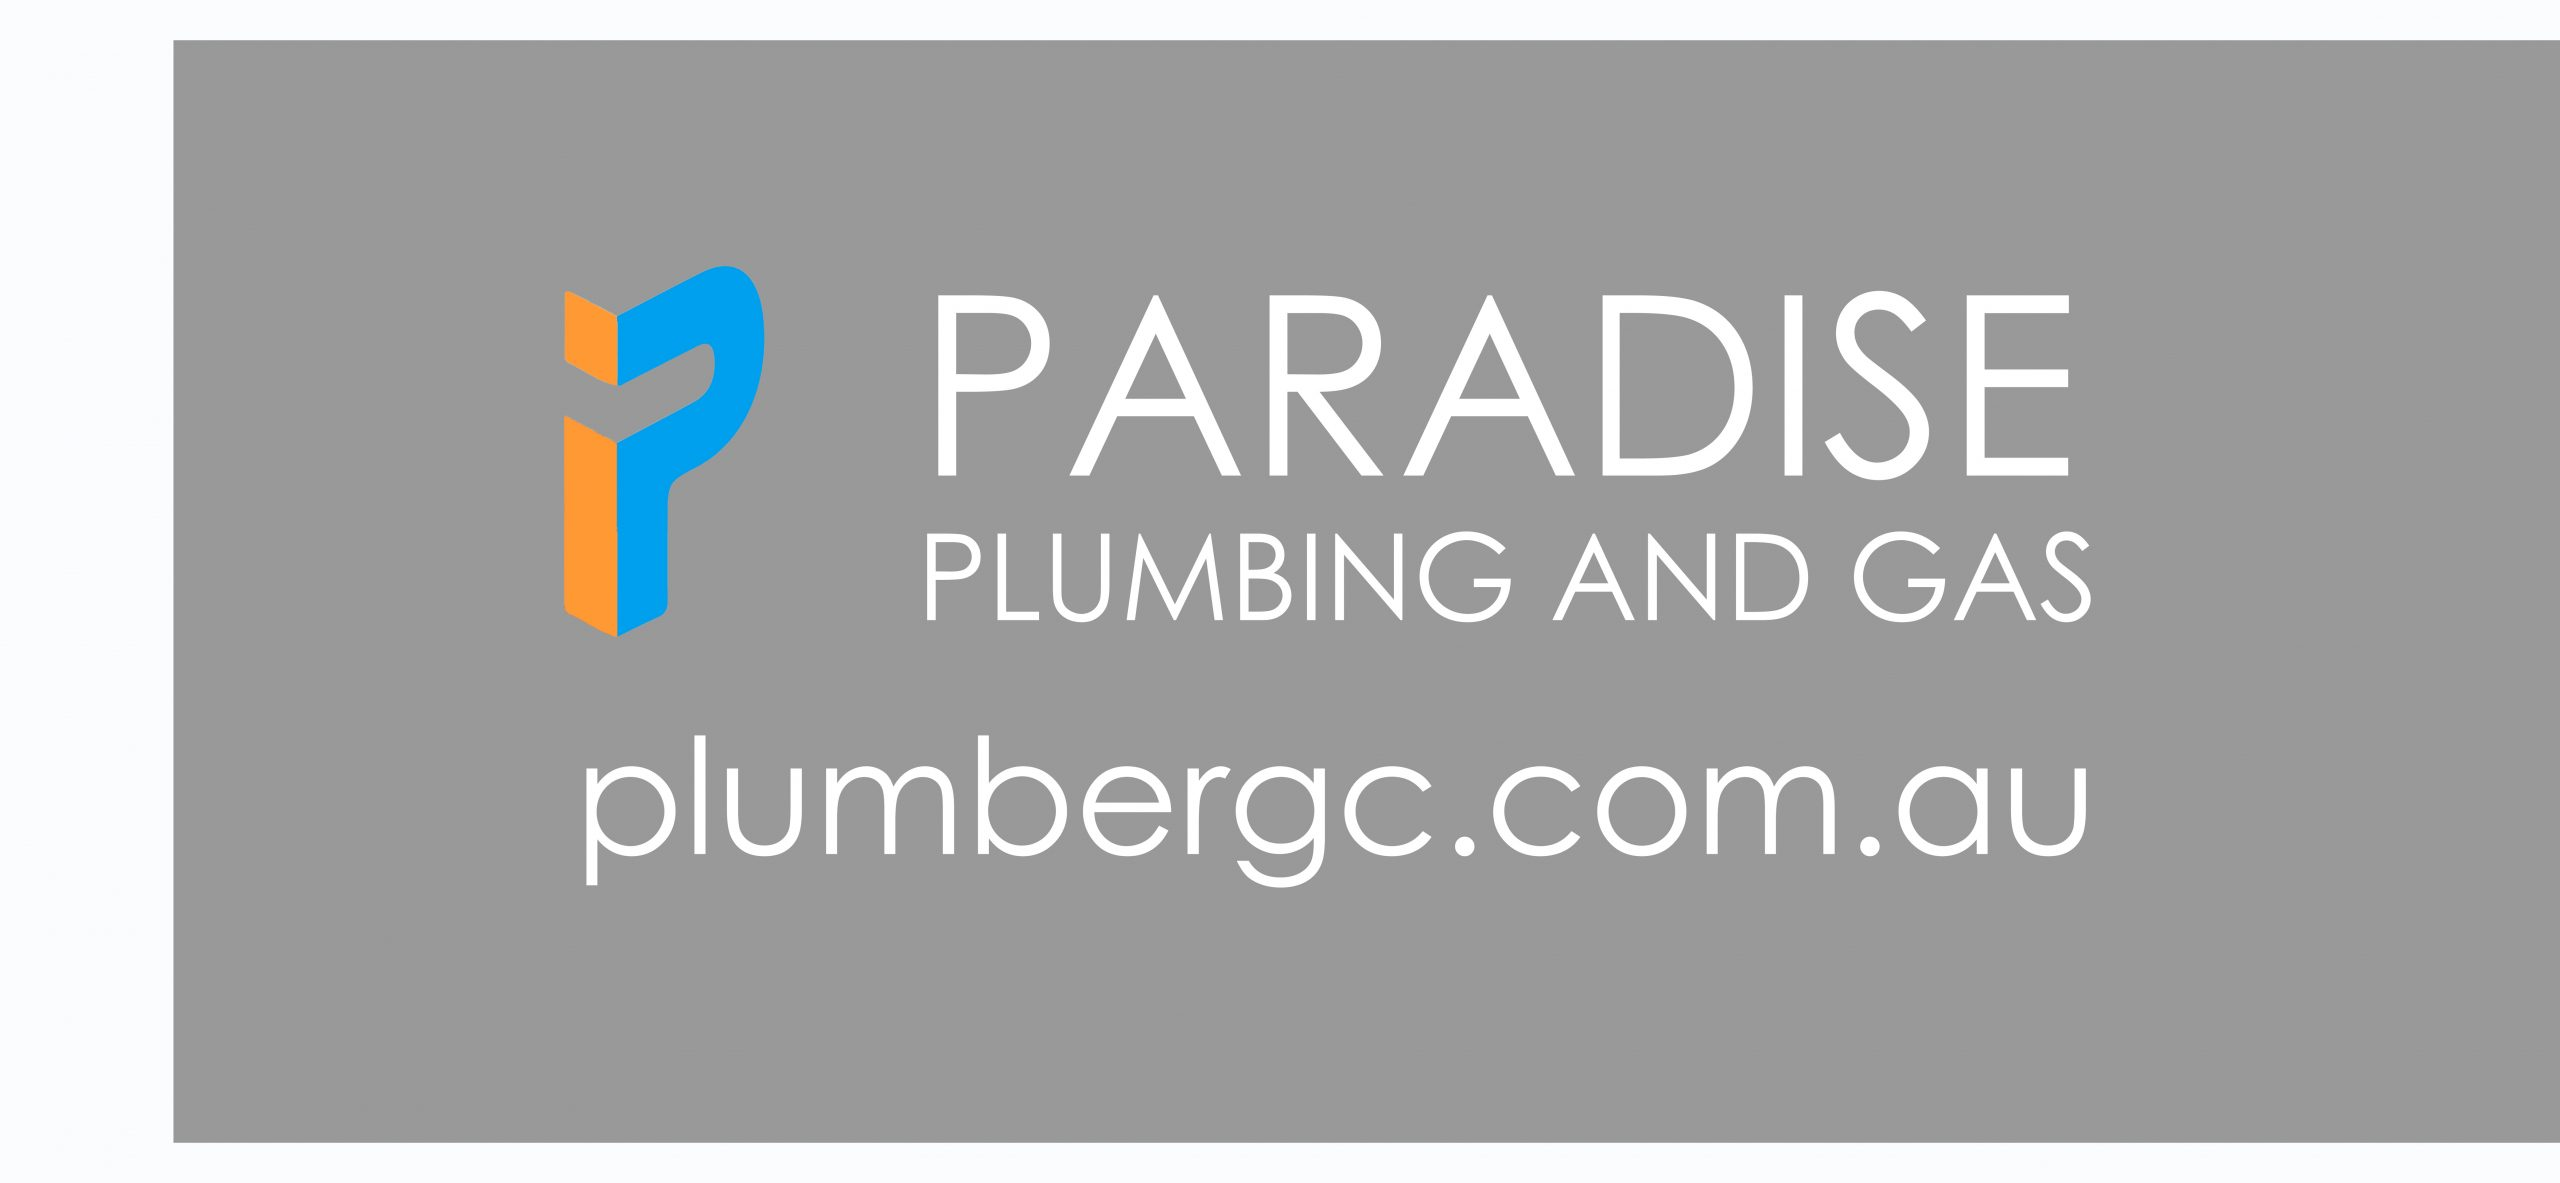 Paradise Plumbing and Gas